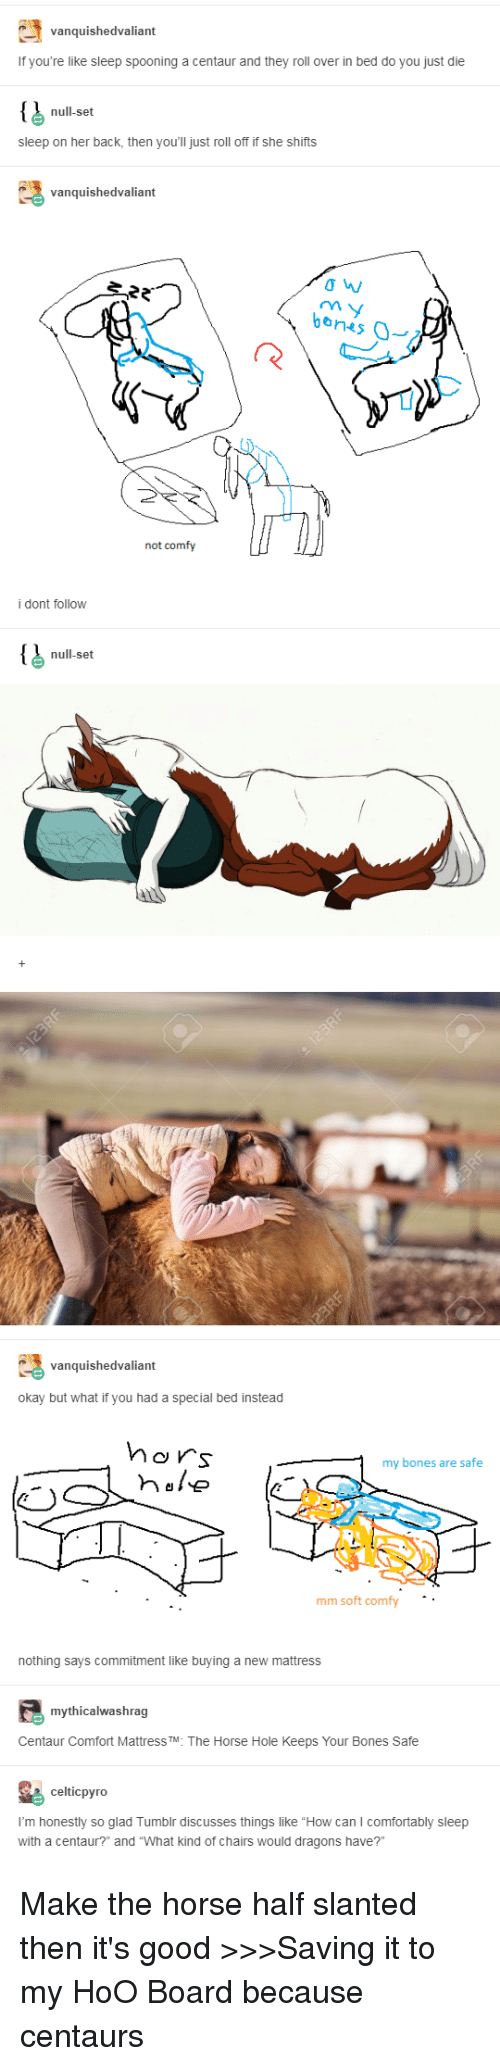 """Bones, Tumblr, and Good: vanquishedvaliant  If you're like sleep spooning a centaur and they roll over in bed do you just die  null-set  sleep on her back, then you'll just roll off if she shifts  vanquishedvaliant  ans  not comfy  i dont follow  null-set  vanquishedvaliant  okay but what if you had a special bed instead  MO s  my bones are safe  mm soft comfy  nothing says commitment like buying a new mattress  mythicalwashrag  Centaur Comfort Mattress TM: The Horse Hole Keeps Your Bones Safe  celticpyro  I'm honestly so glad Tumblr discusses things like """"How can I comfortably sleep  with a centaur?"""" and """"What kind of chairs would dragons have?"""" Make the horse half slanted then it's good >>>Saving it to my HoO Board because centaurs"""